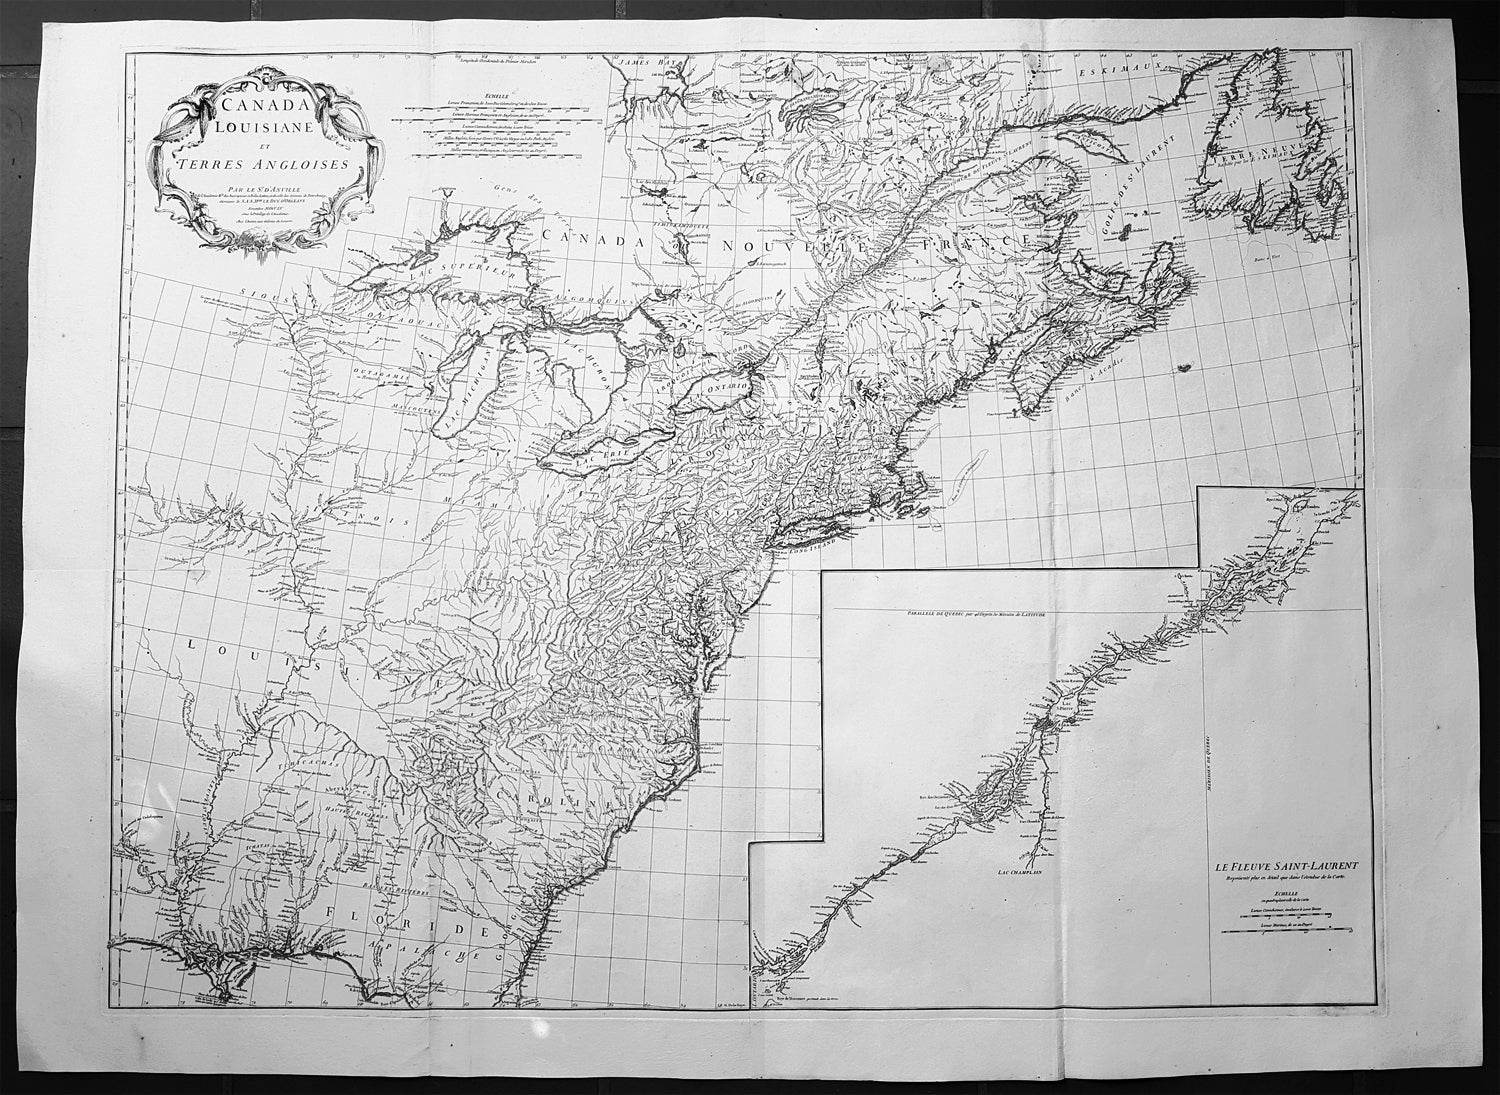 1755 JB D Anville Large Original Antique Map of North America, Great United States Great Lakes Map on rocky mountains united states map, west central united states map, great lakes map with states, great lakes states outline map, atlantic ocean united states map, colorado river united states map, big united states map, gulf coast united states map, gulf of mexico united states map, toronto united states map, the northeast united states map, rio grande united states map, gulf of alaska united states map, great lakes florida, lake tahoe united states map, great lakes google maps, appalachian mountains united states map, major rivers united states map, lake michigan united states map, lake erie united states map,